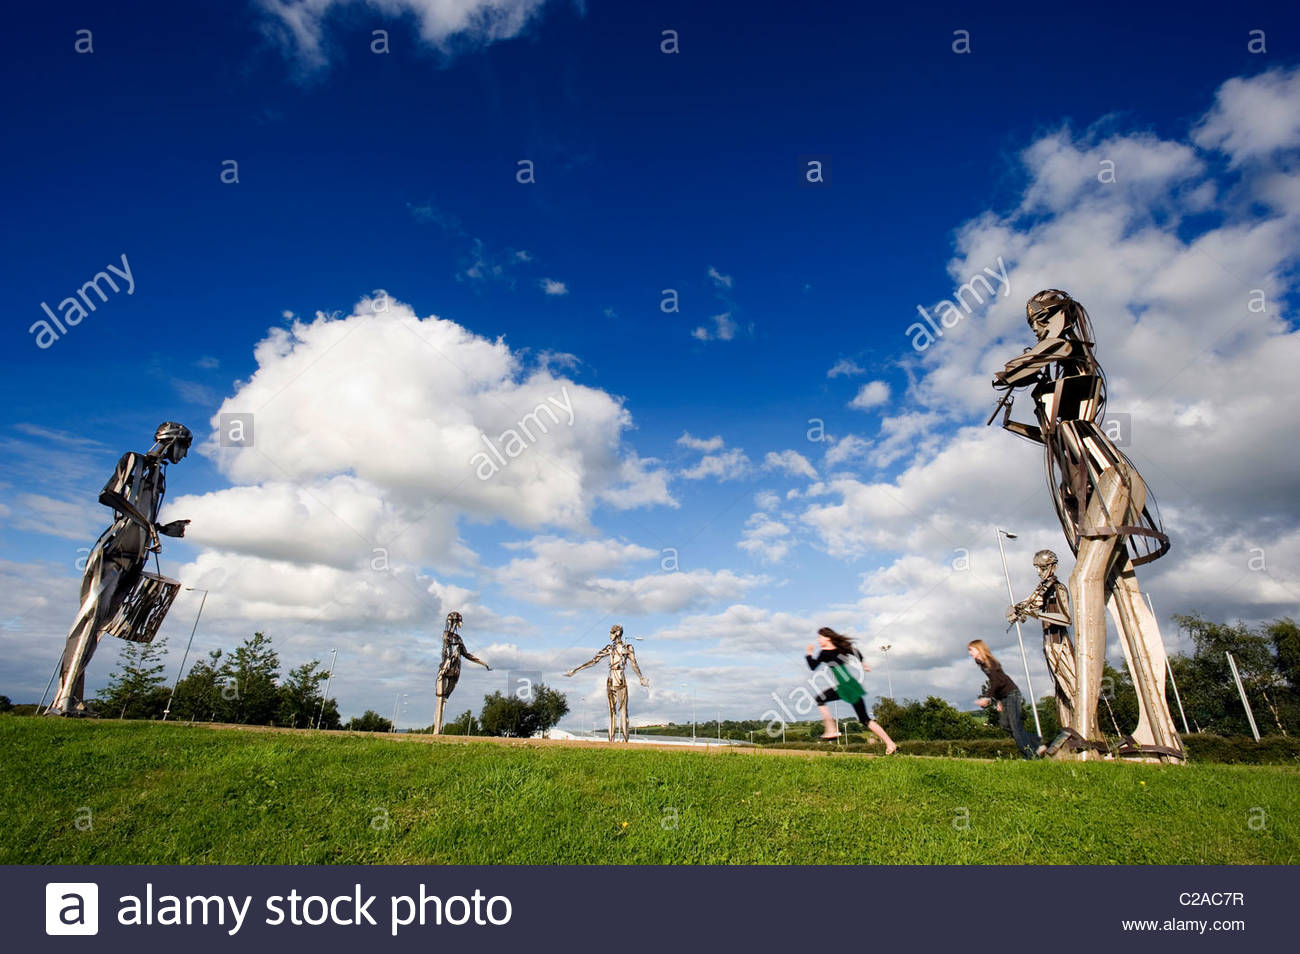 'Let The Dance Begin Sculpture' in Strabane, Northern Ireland. - Stock Image